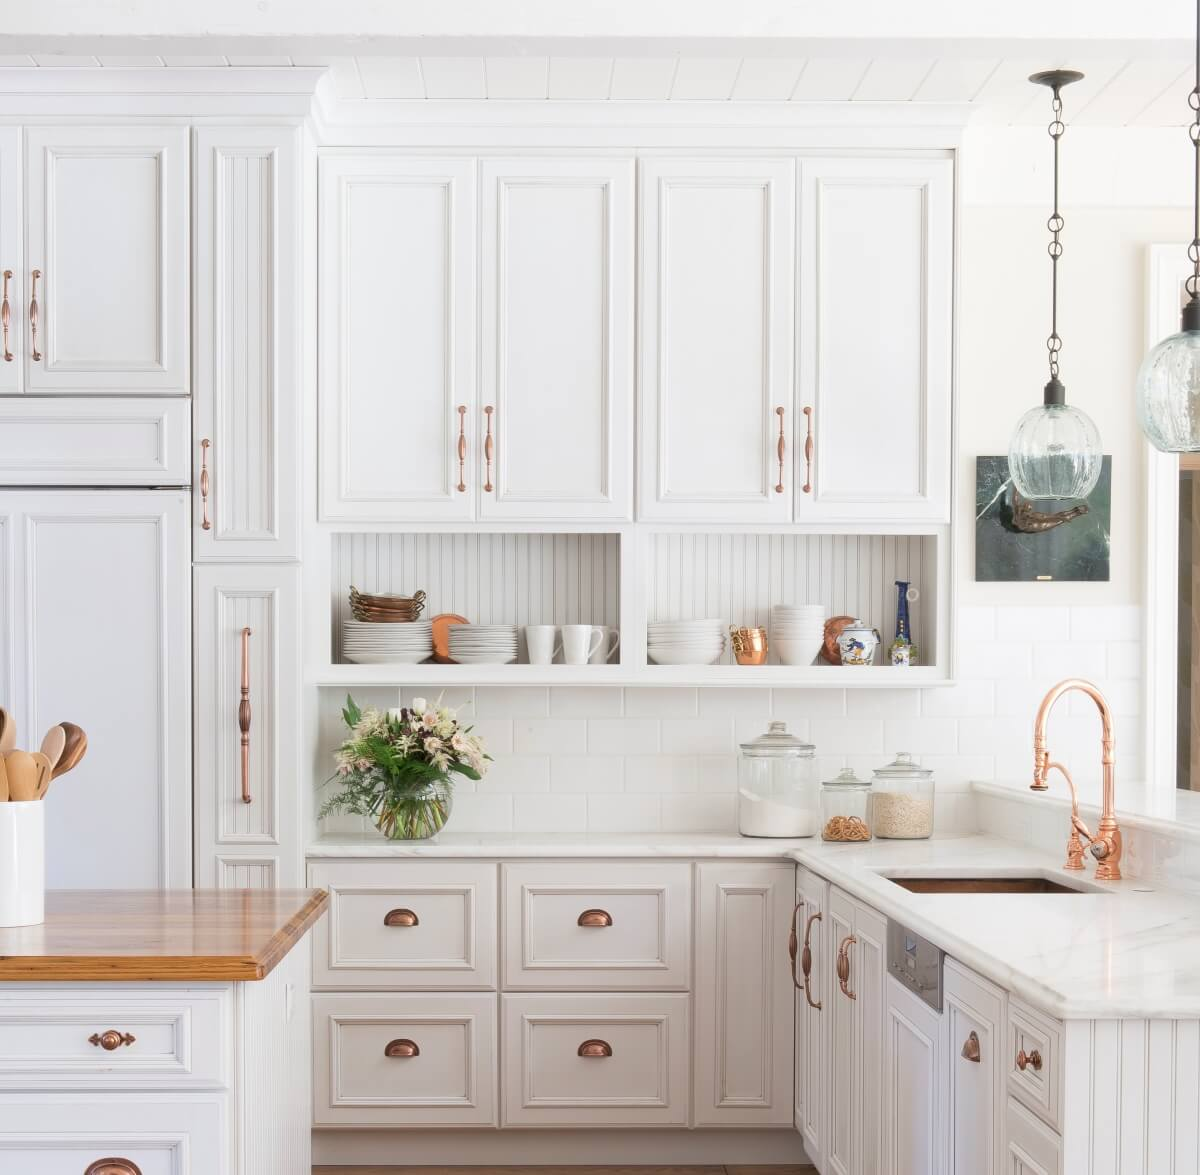 A French Farmhouse style kitchen remodel with bright white painted cabinets and copper hardware. A Dura Supreme kitchen featuring Wall Cabinets with Open Display Below.